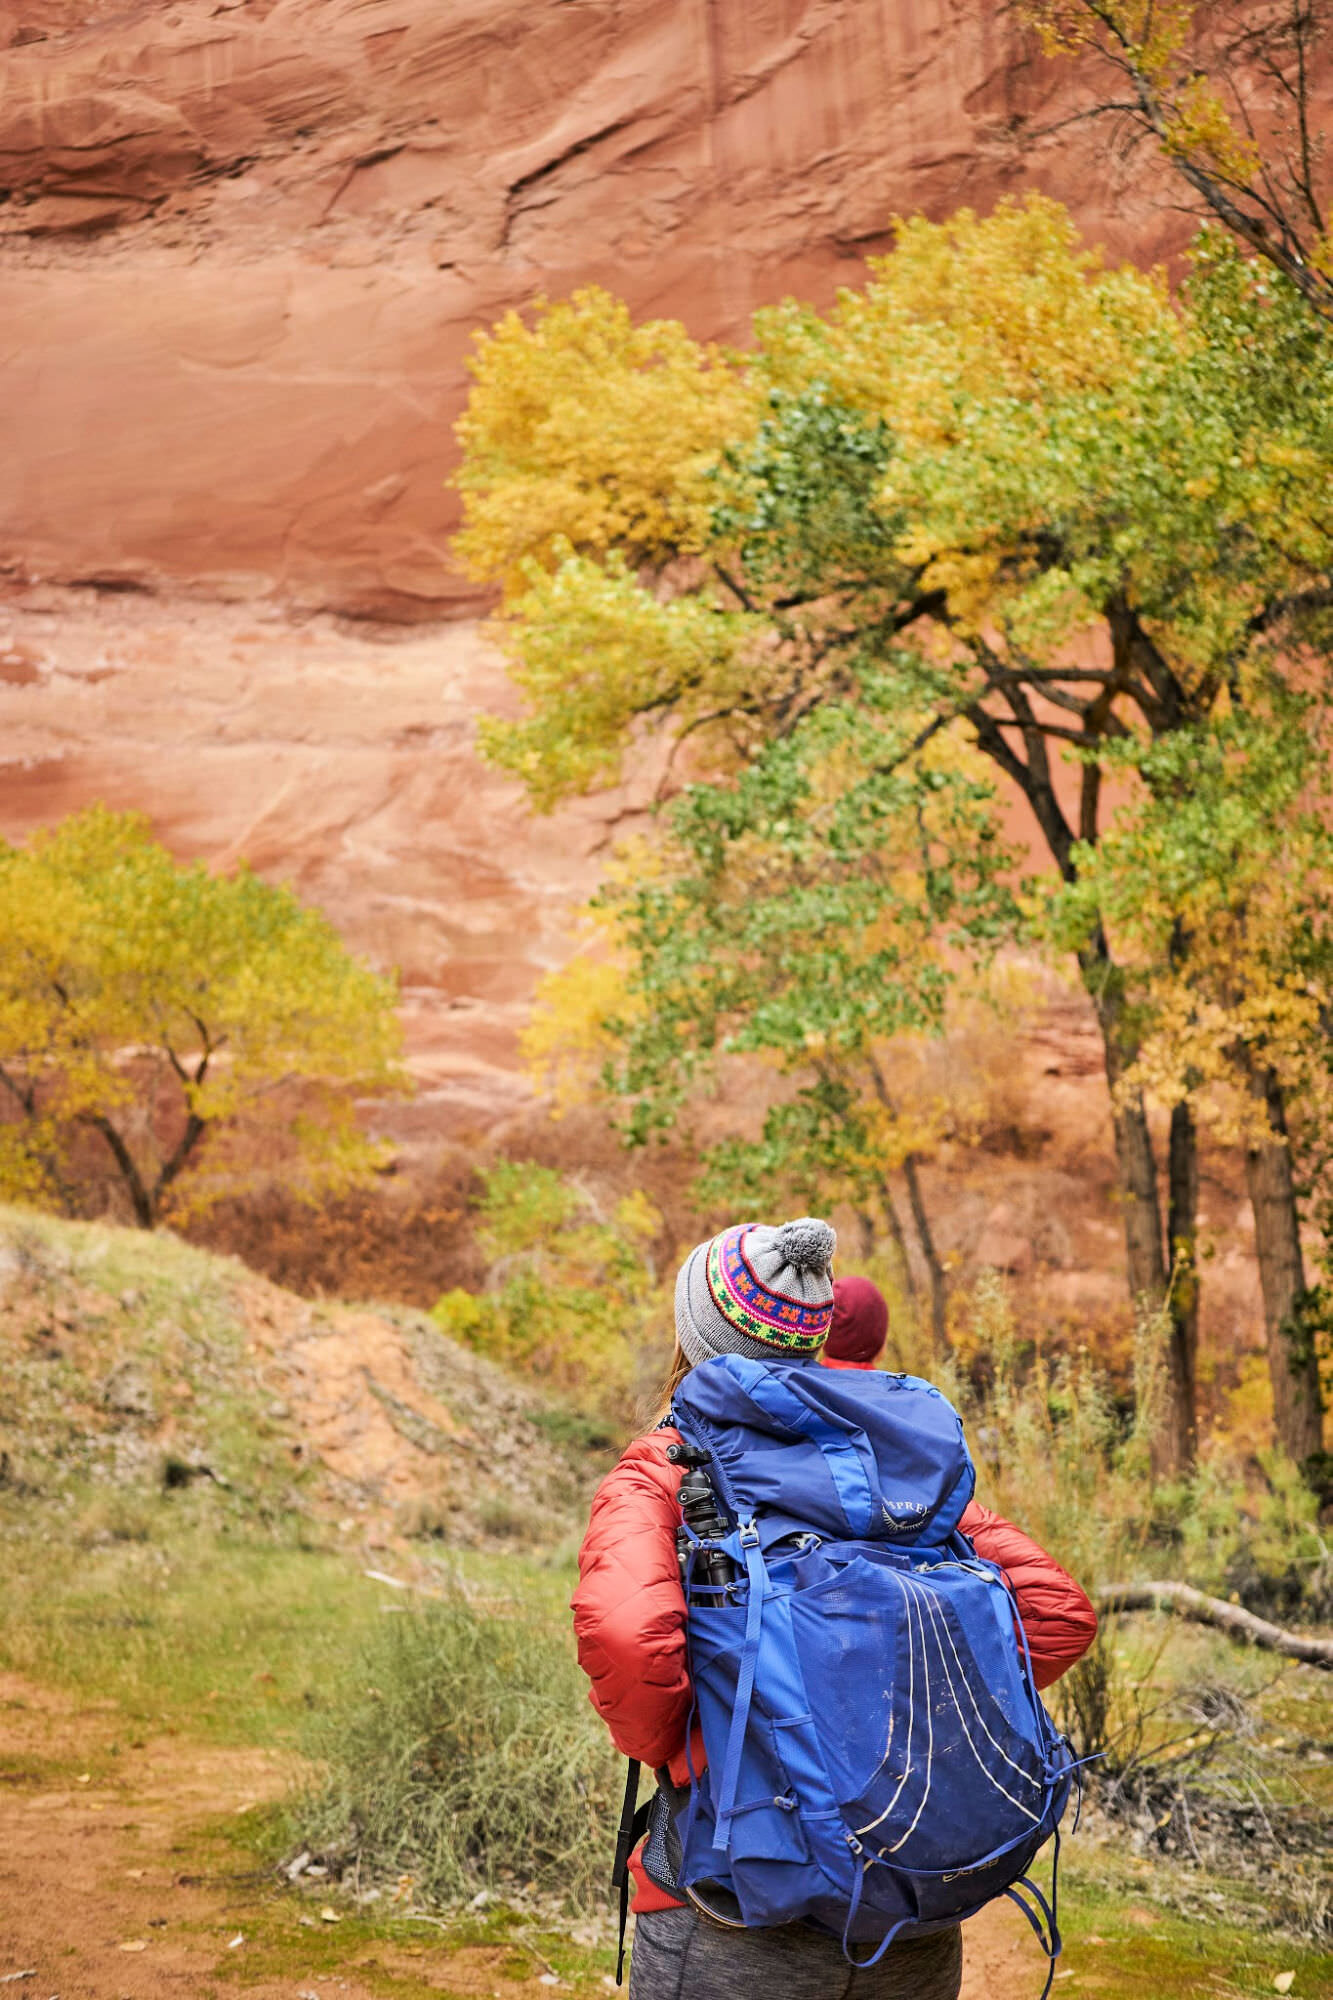 If you want to go backpacking in Coyote Gulch - this is the guide you need! Click through for all the information and tips for backpacking to Coyote Gulch in Utah. By Amanda Outside. www.amandaoutside.com